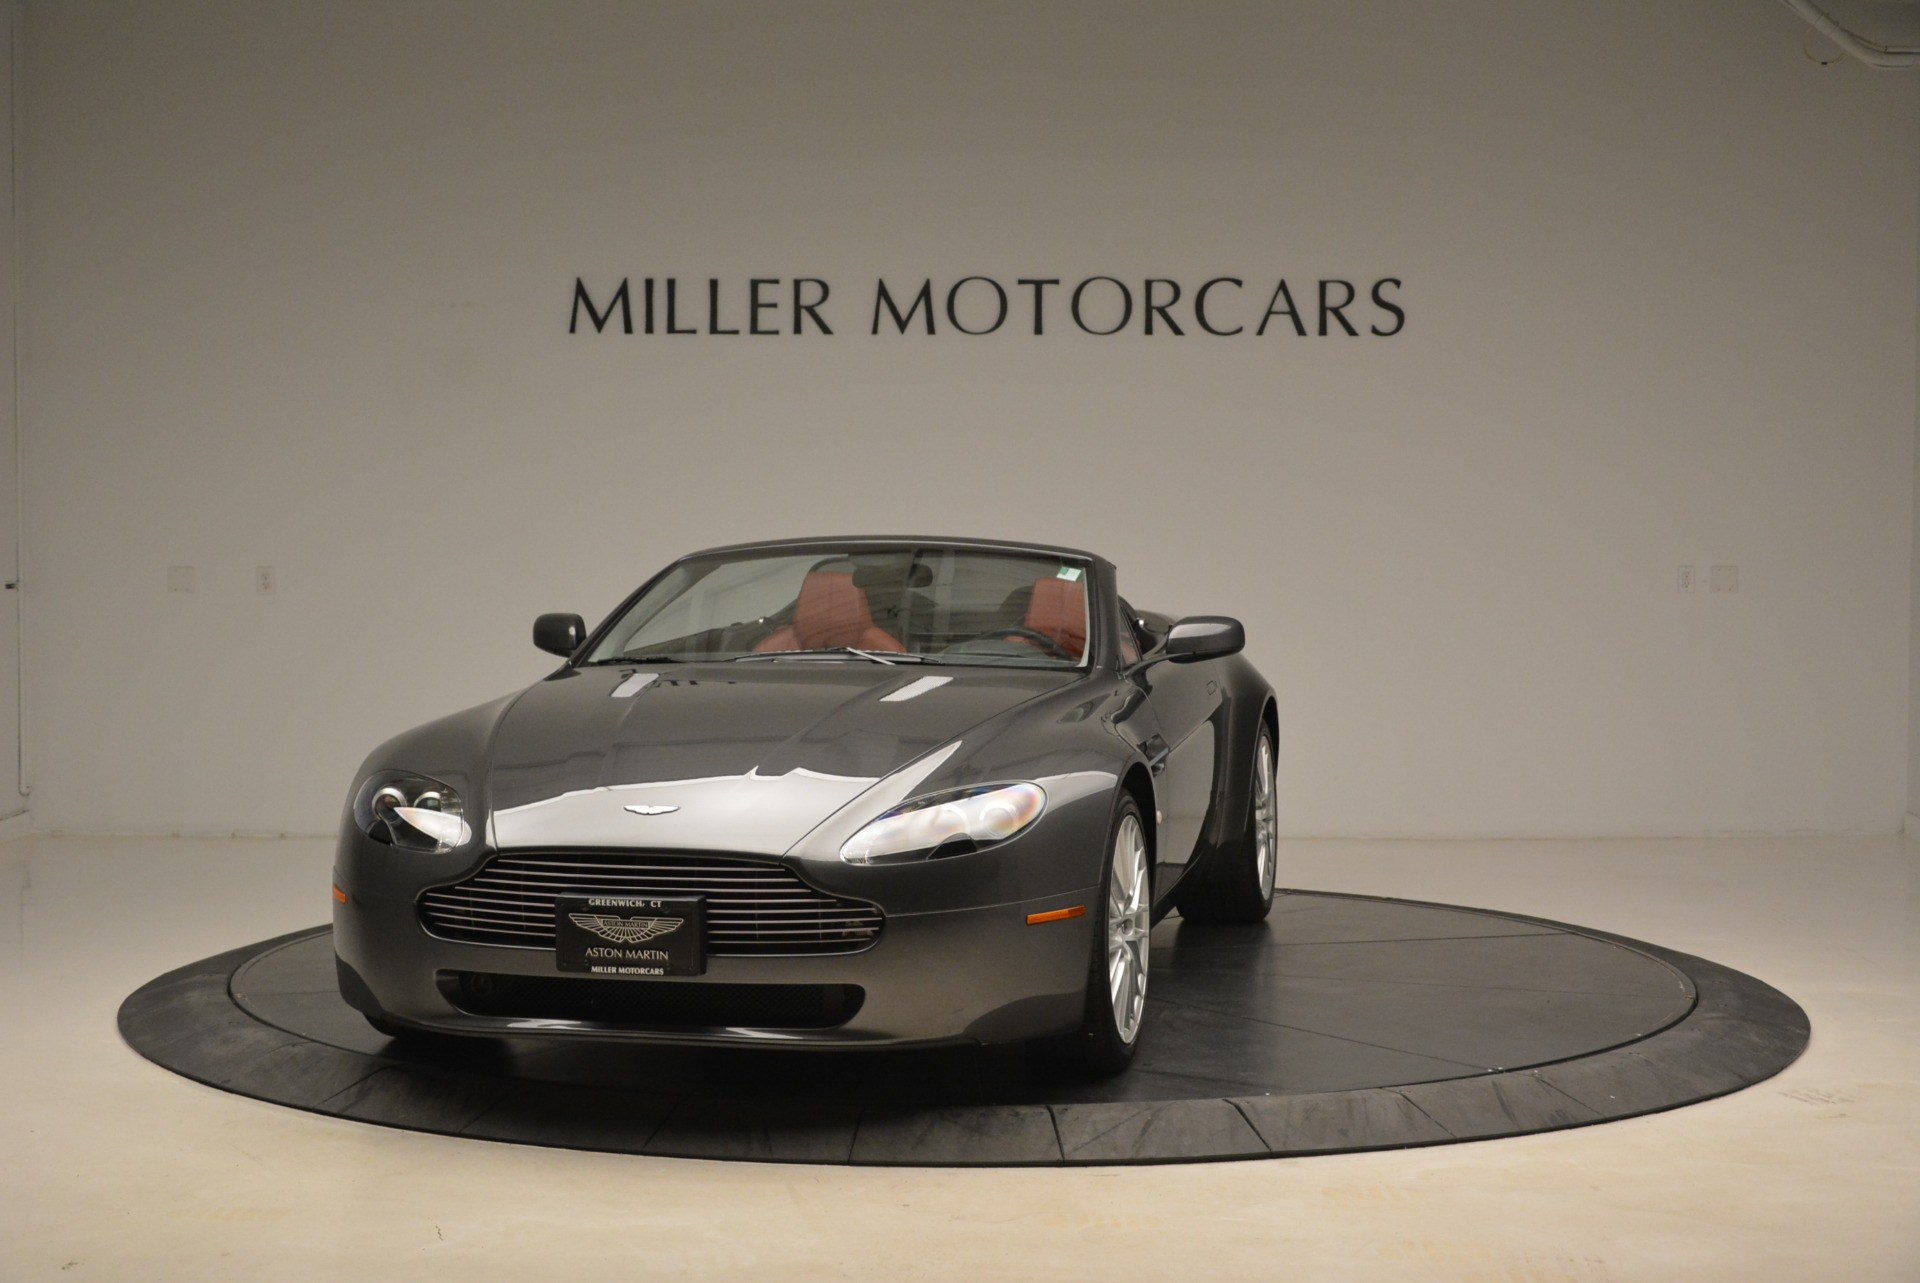 Used 2009 Aston Martin V8 Vantage Roadster for sale Sold at Pagani of Greenwich in Greenwich CT 06830 1